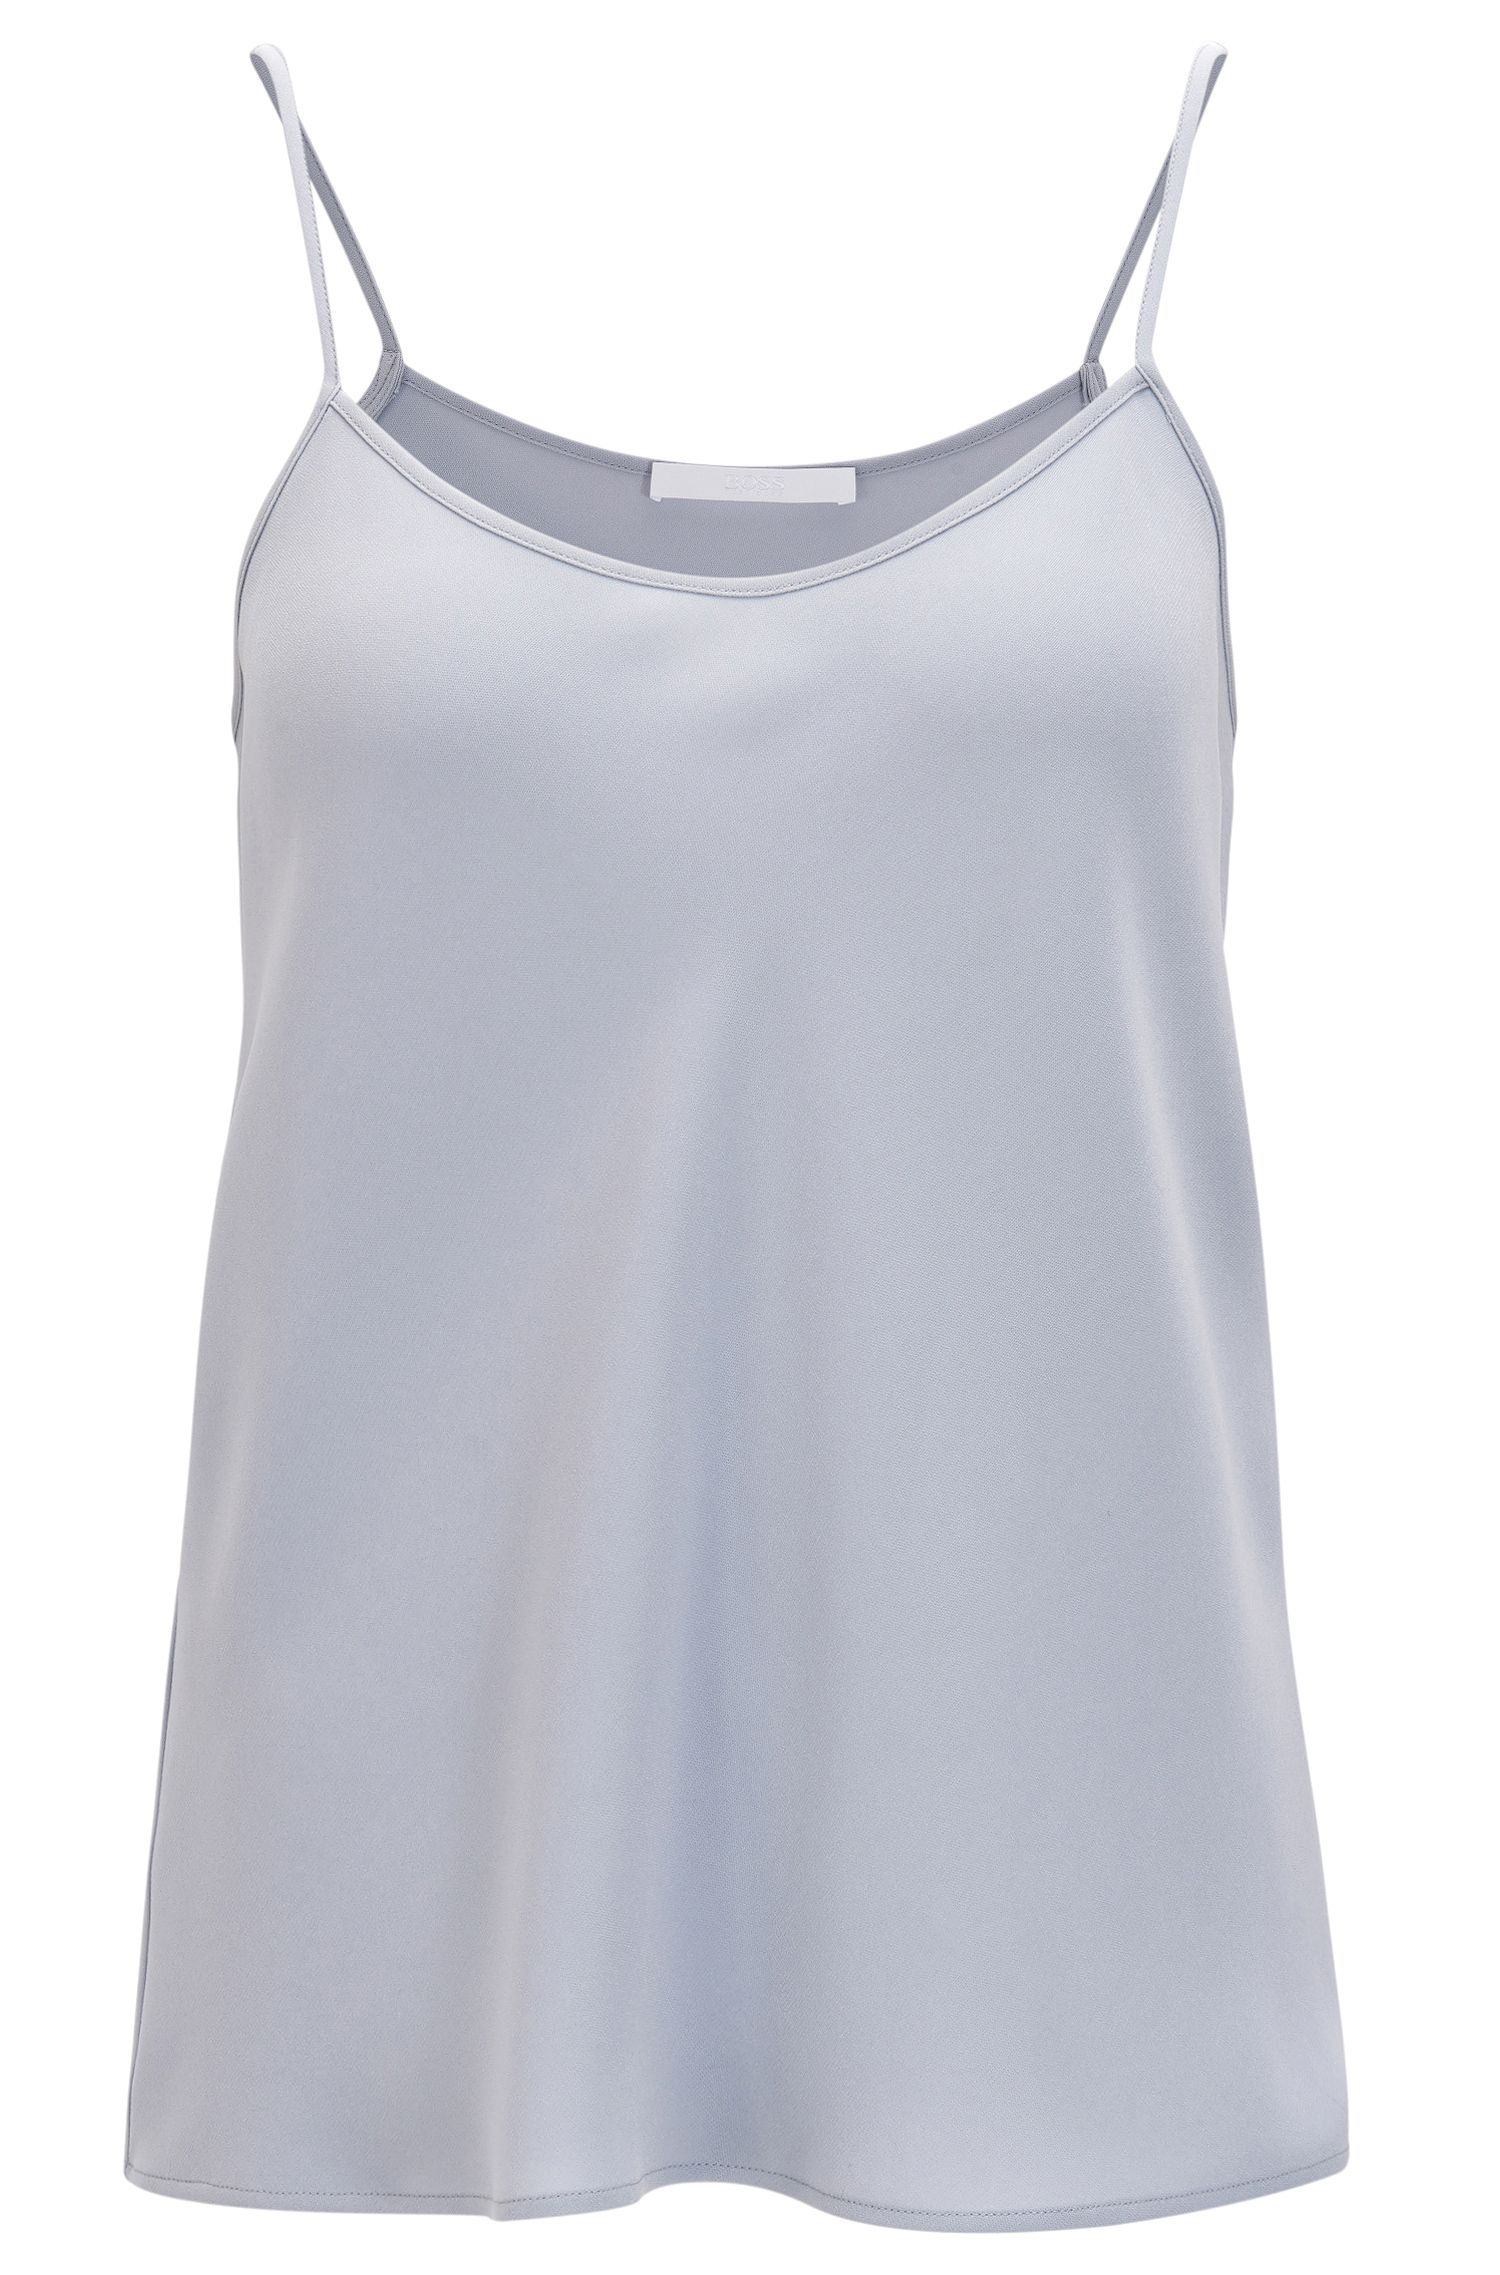 Camisole with scoop neck